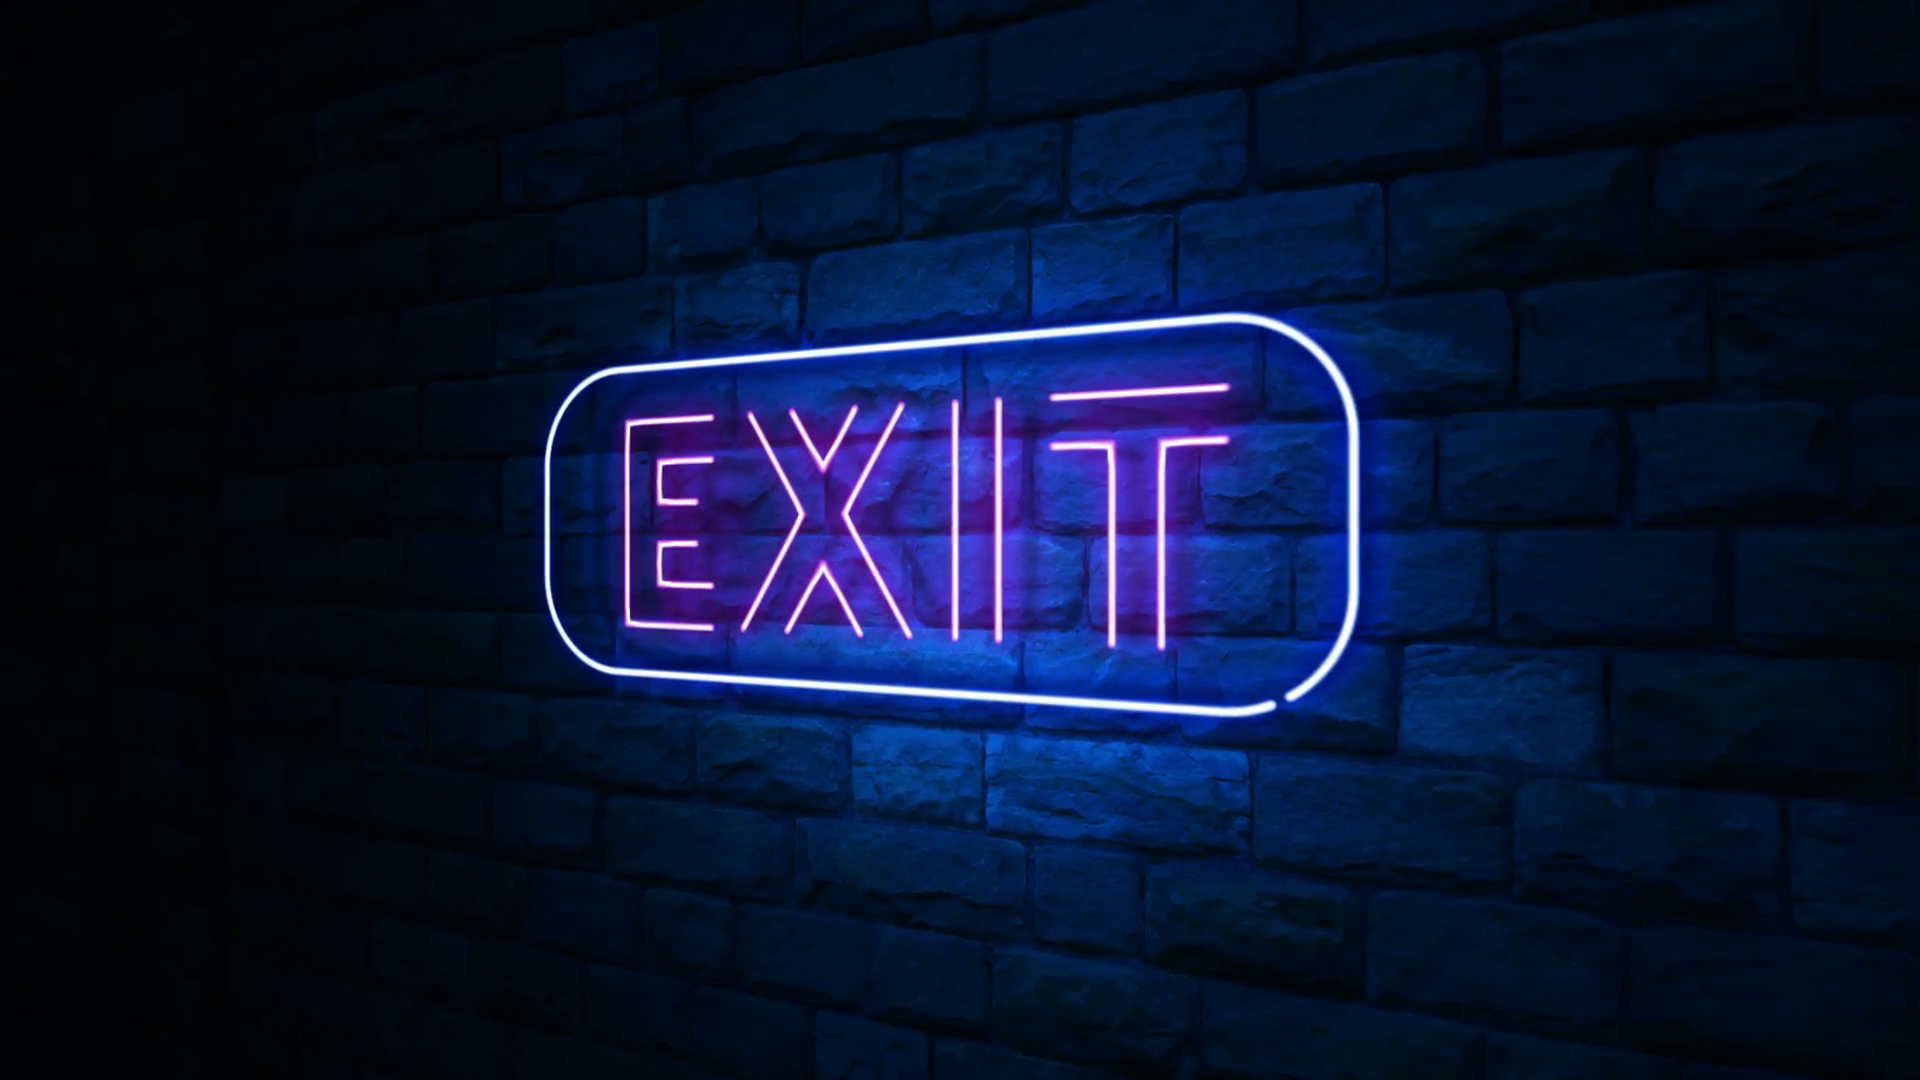 Animation of exit neon light sign at urban wall in the night